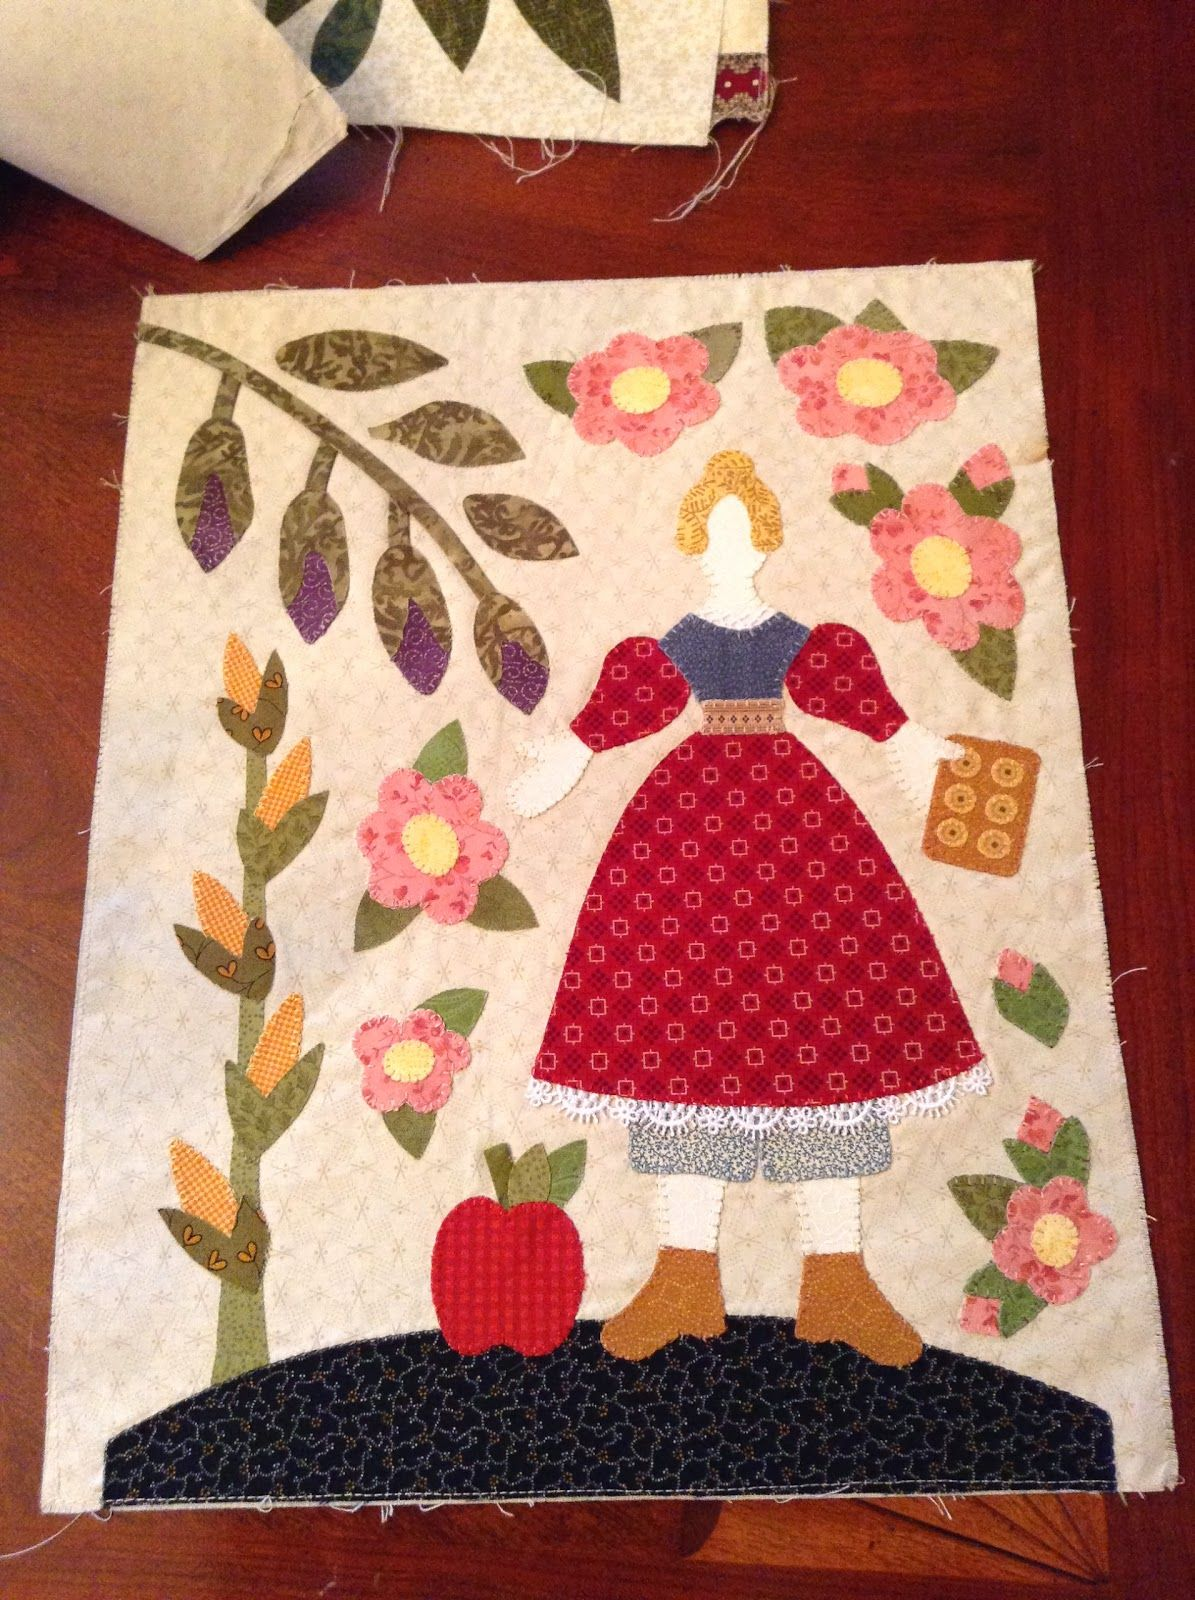 The Civil War Bride Quilt | Patchwork | Pinterest